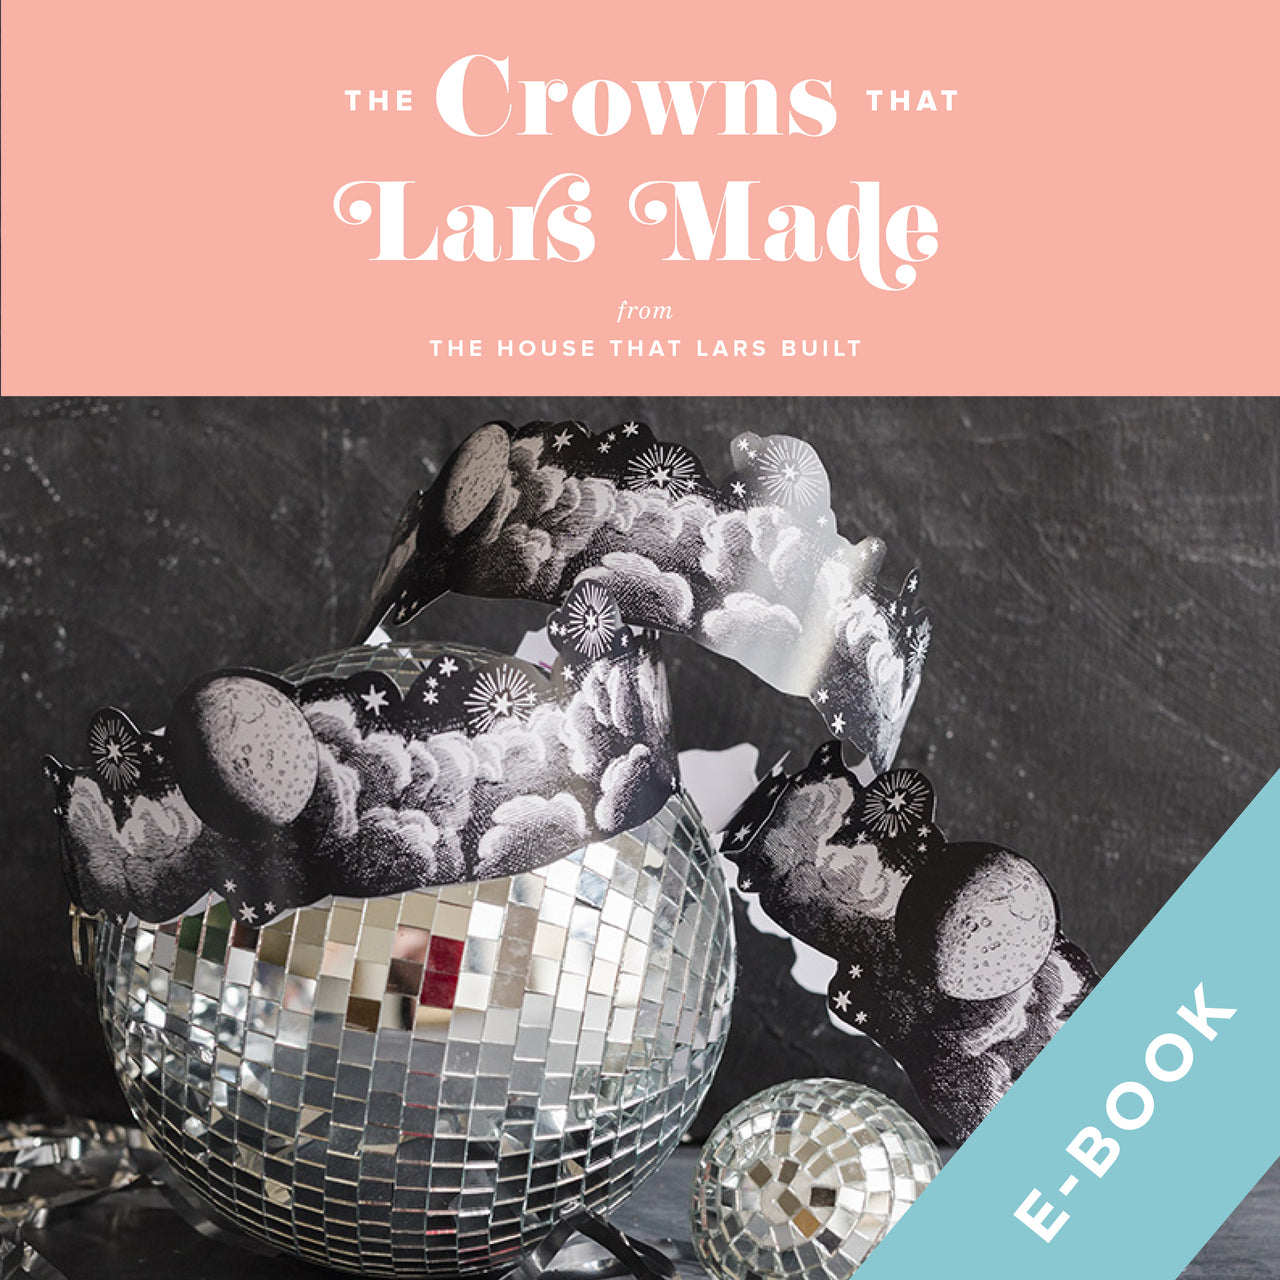 The Crowns That Lars Made, E-Book